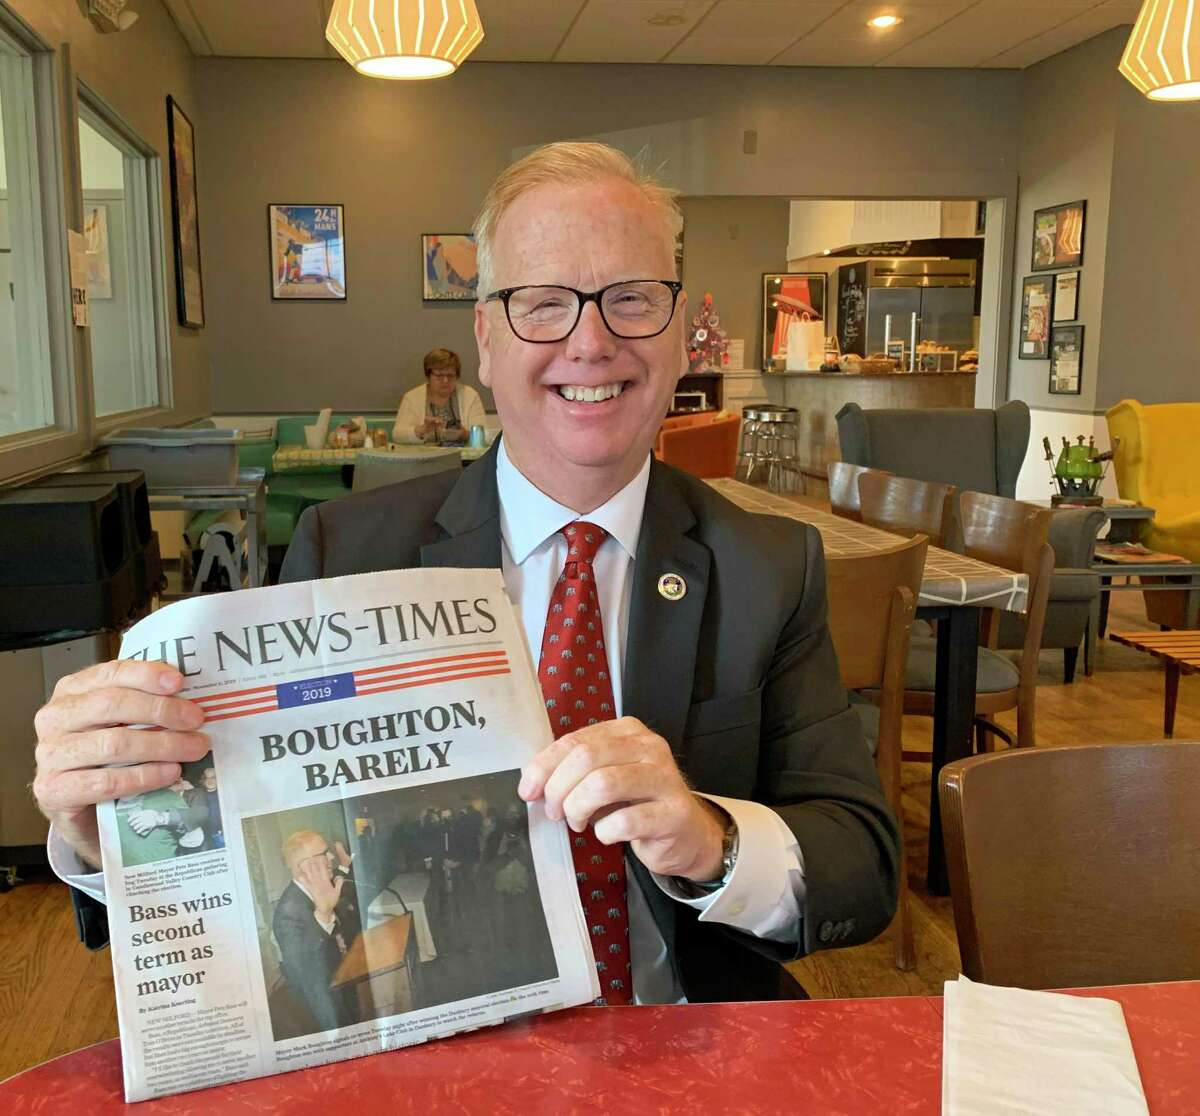 Mayor Mark Boughton shows the local newspaper the day after winning an unprecedented 10th term. Danbury Mayor Mark Boughton said earlier this week he would be posting his own tongue-in-cheek response to Oliver on Sunday. In a Facebook post Monday, Boughton said some of Oliver's comments were too